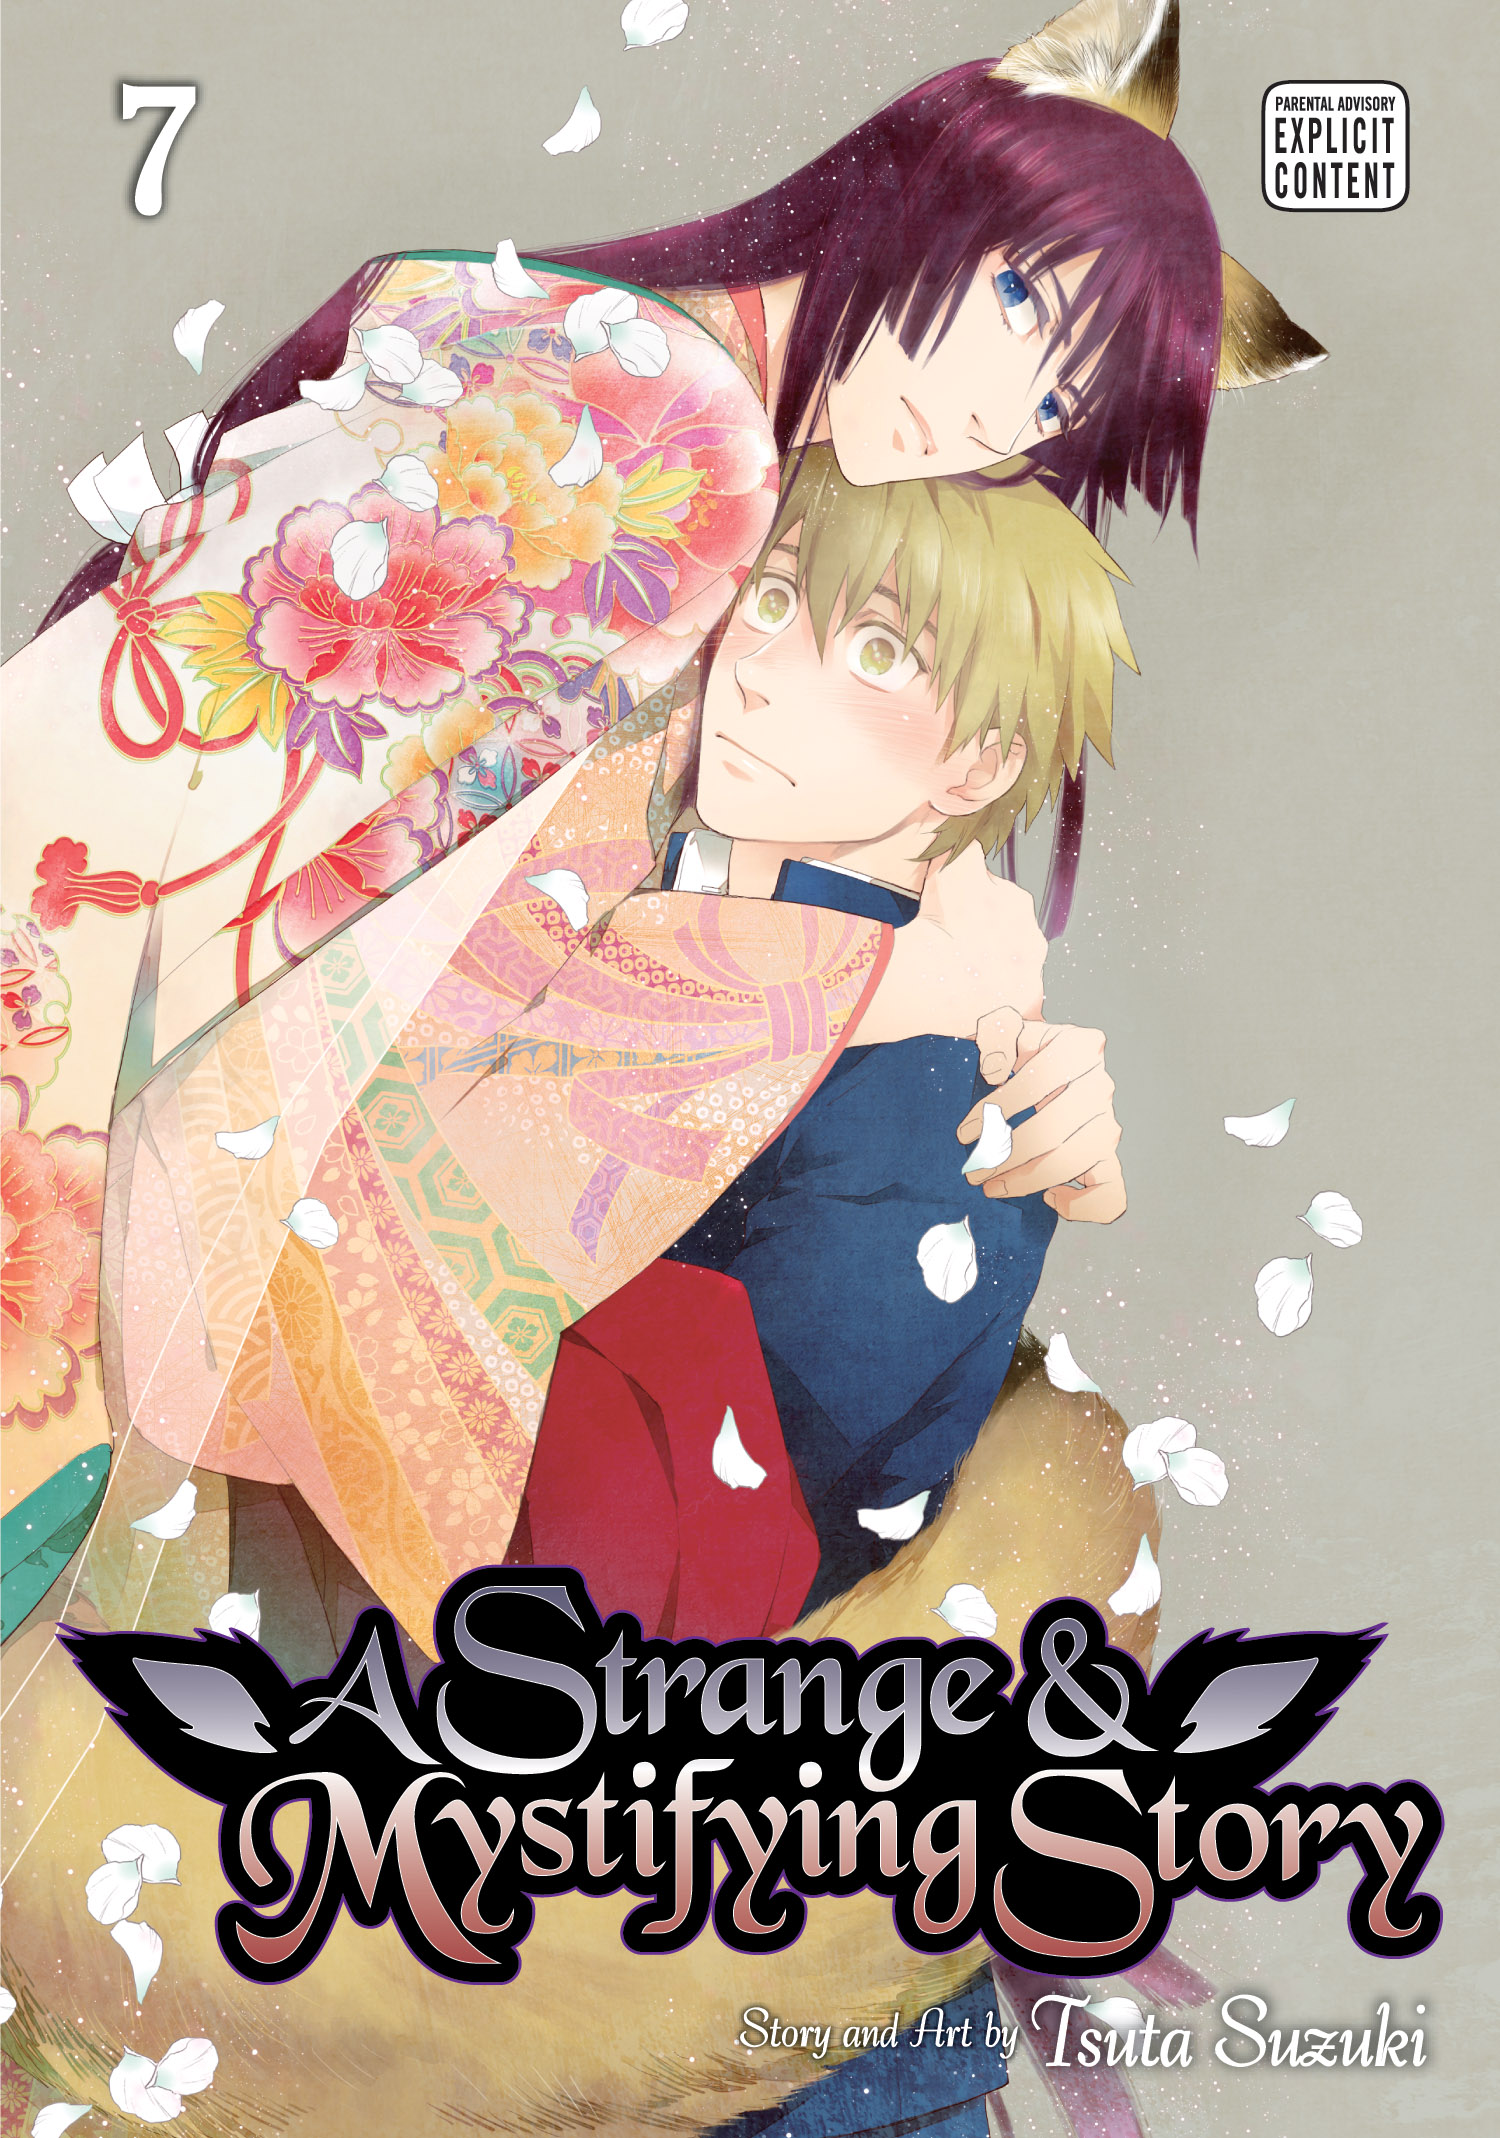 A Strange and Mystifying Story Manga Volume 7